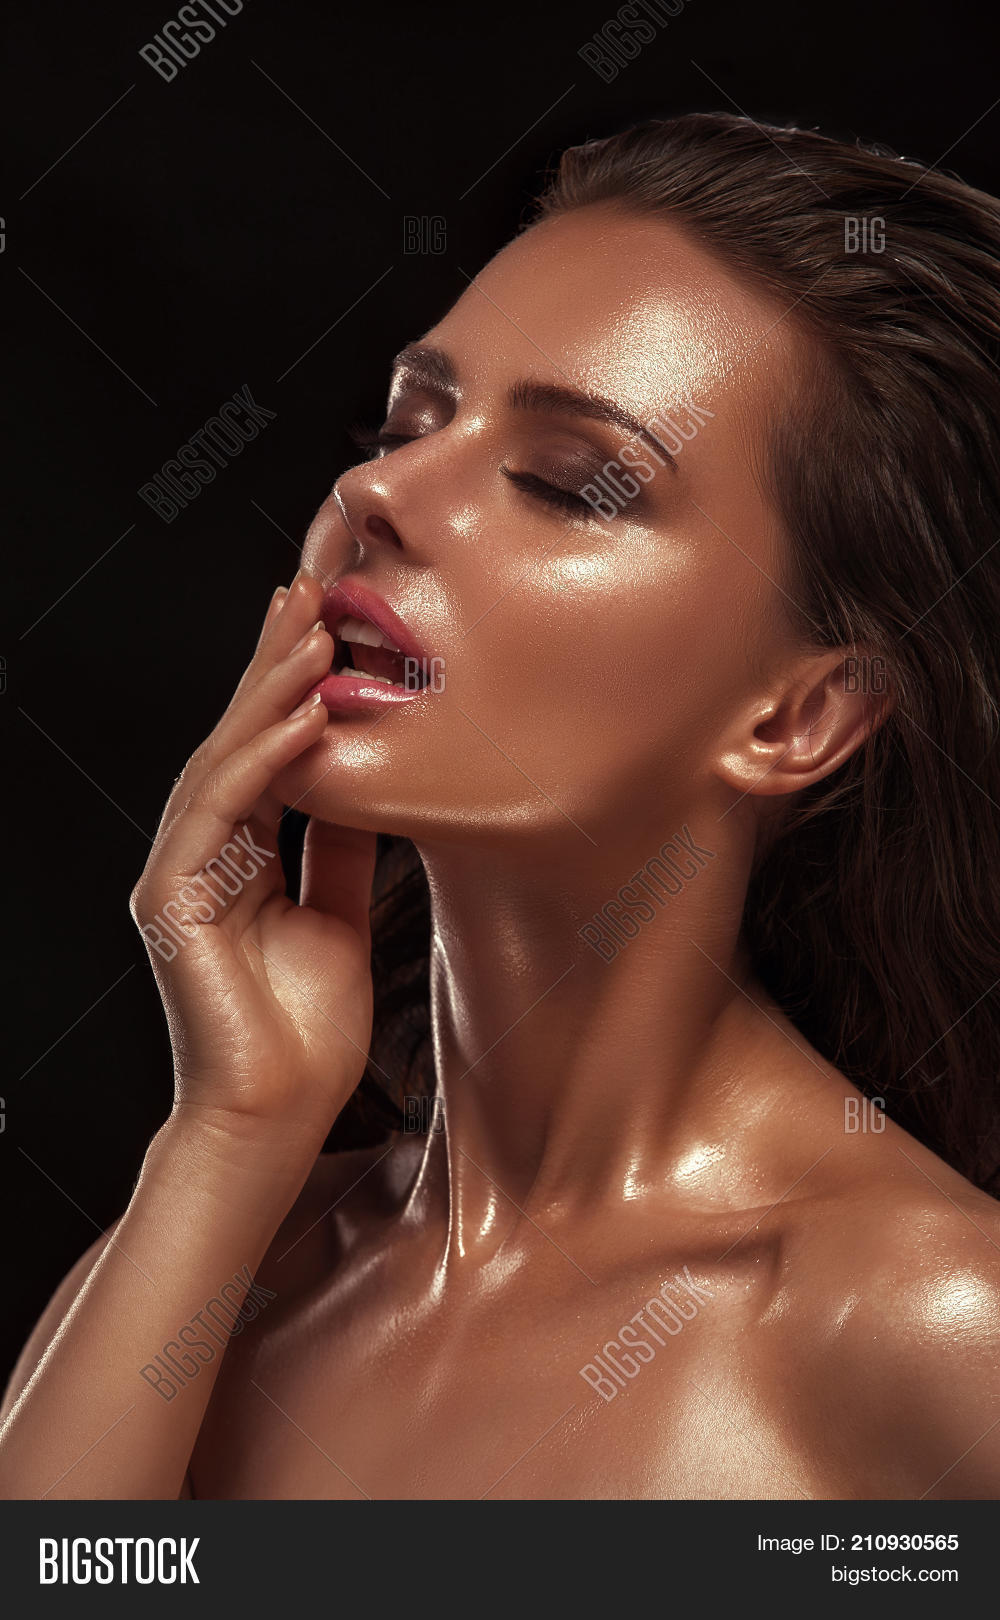 Beauty and the Real Girl: A Bronze Glow For a Boost InConfidence